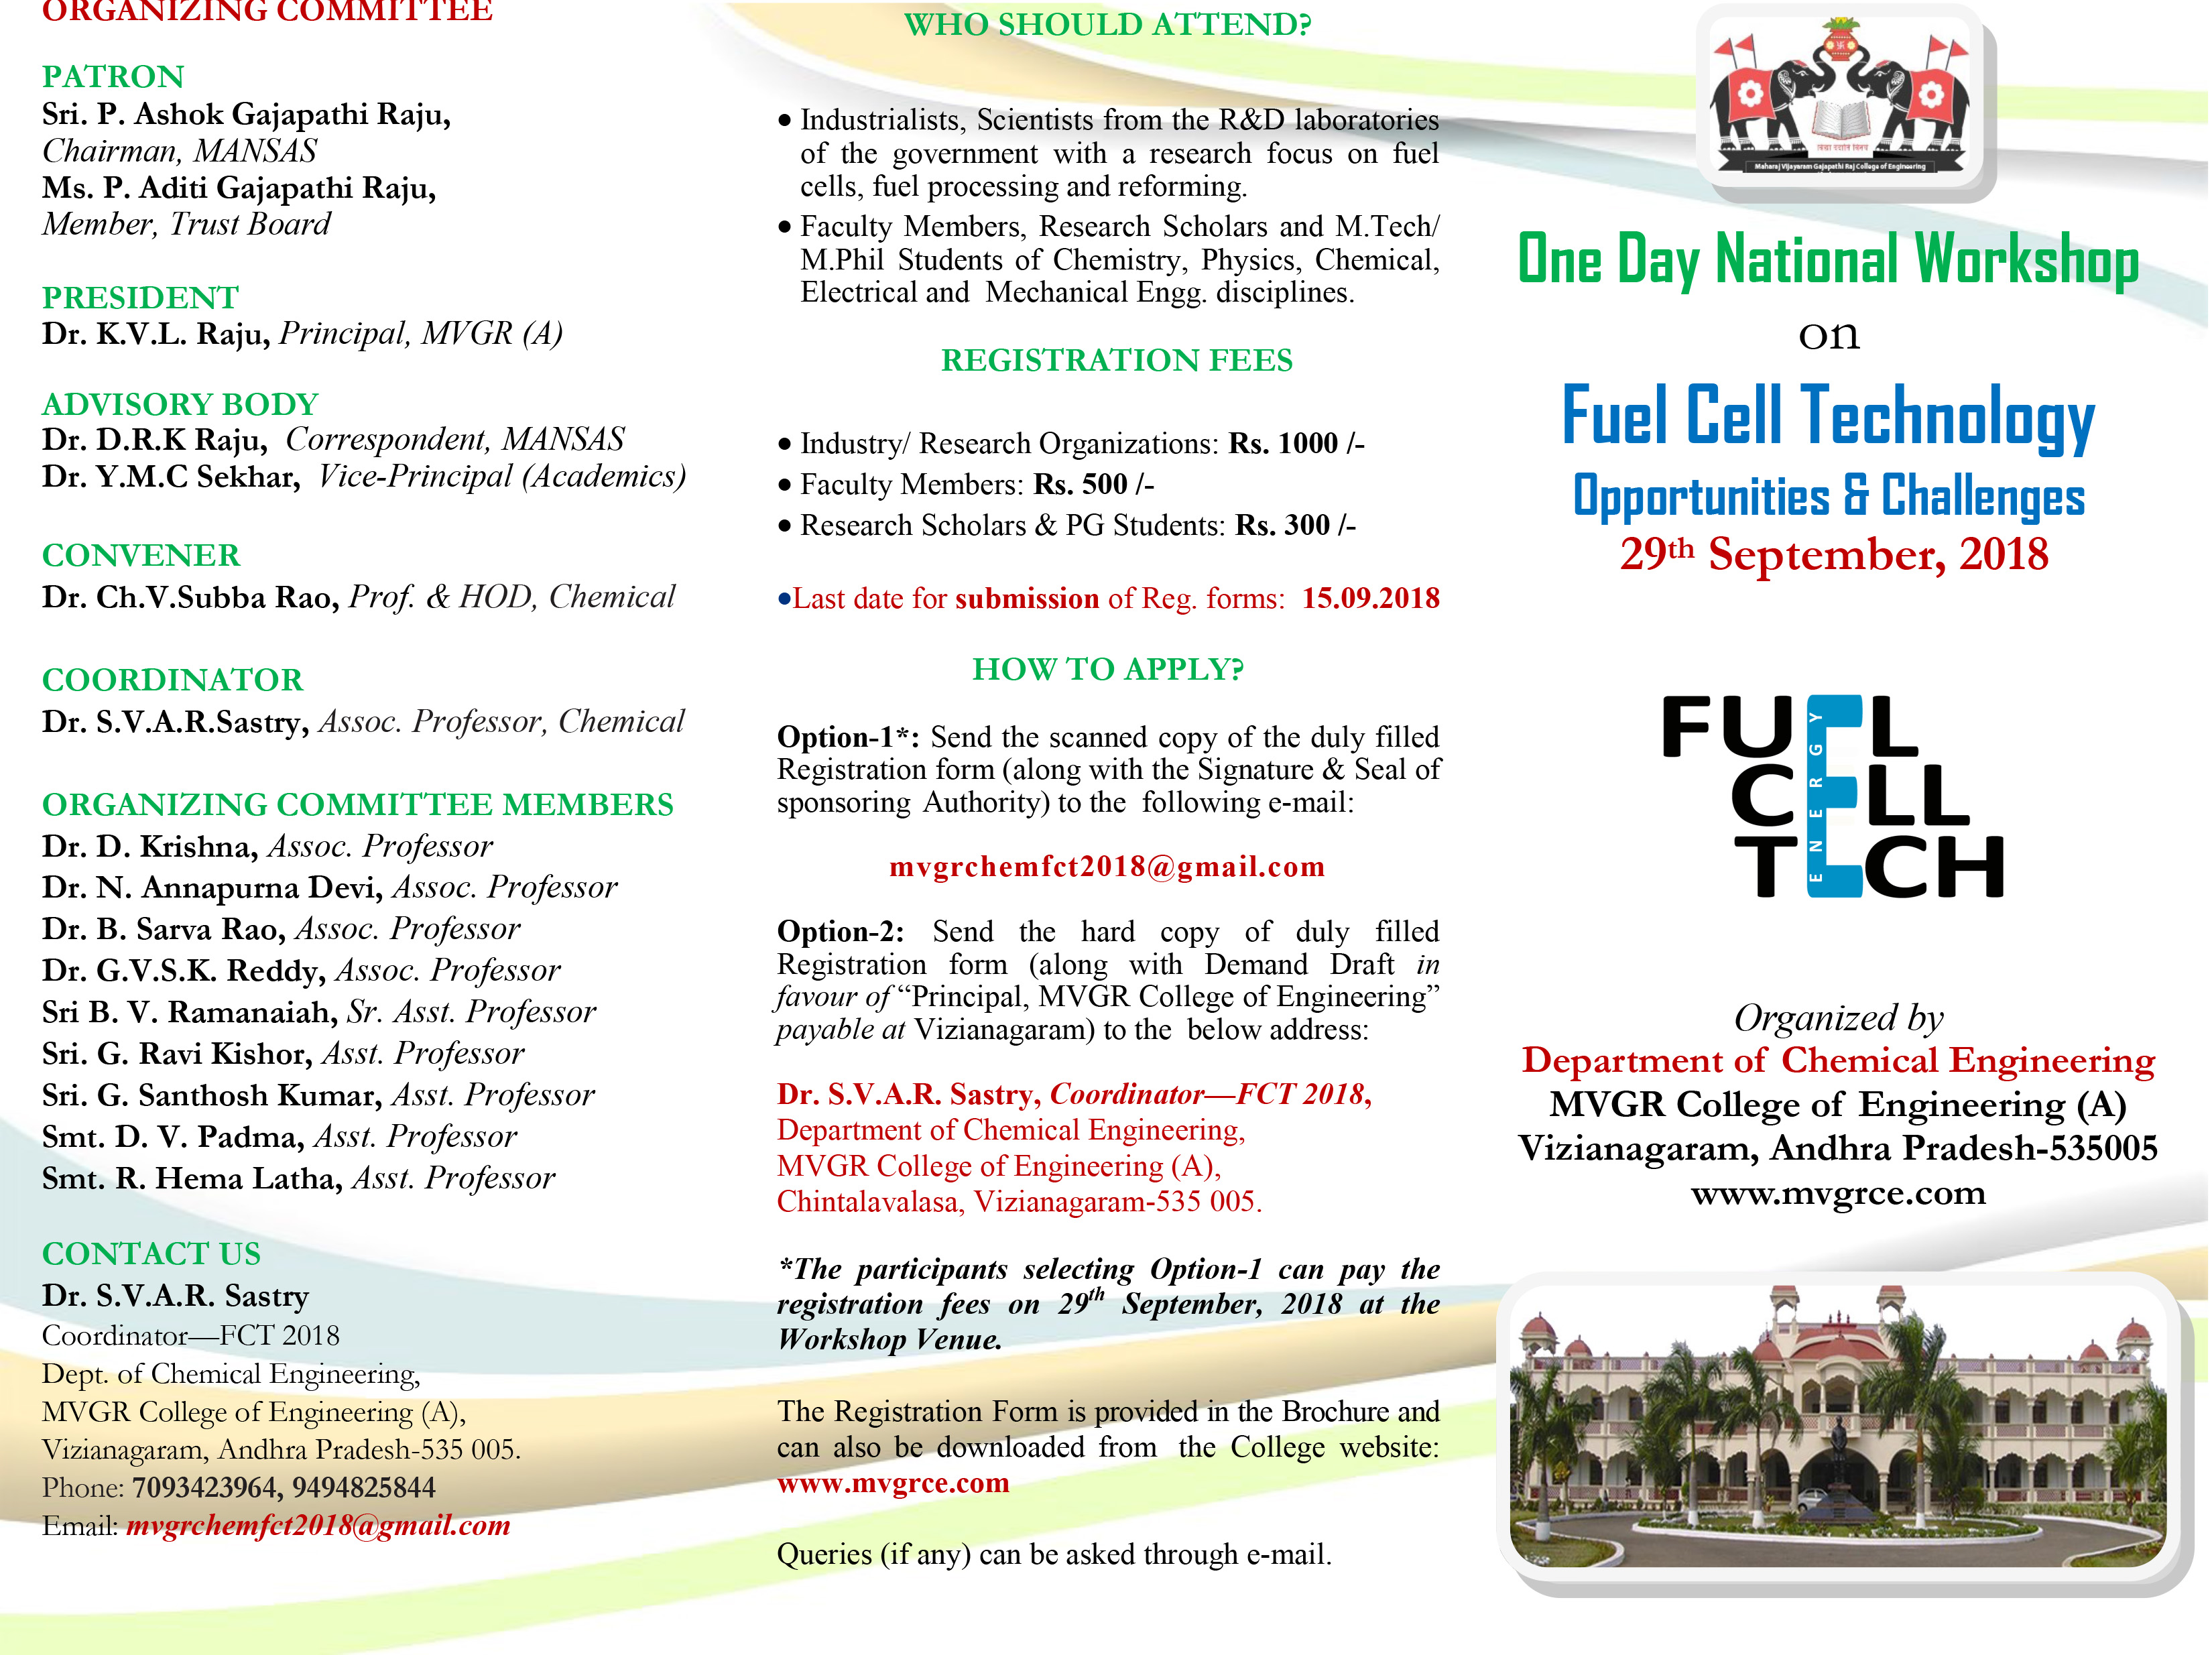 Fuel Cell Technology Work Shop Broucher